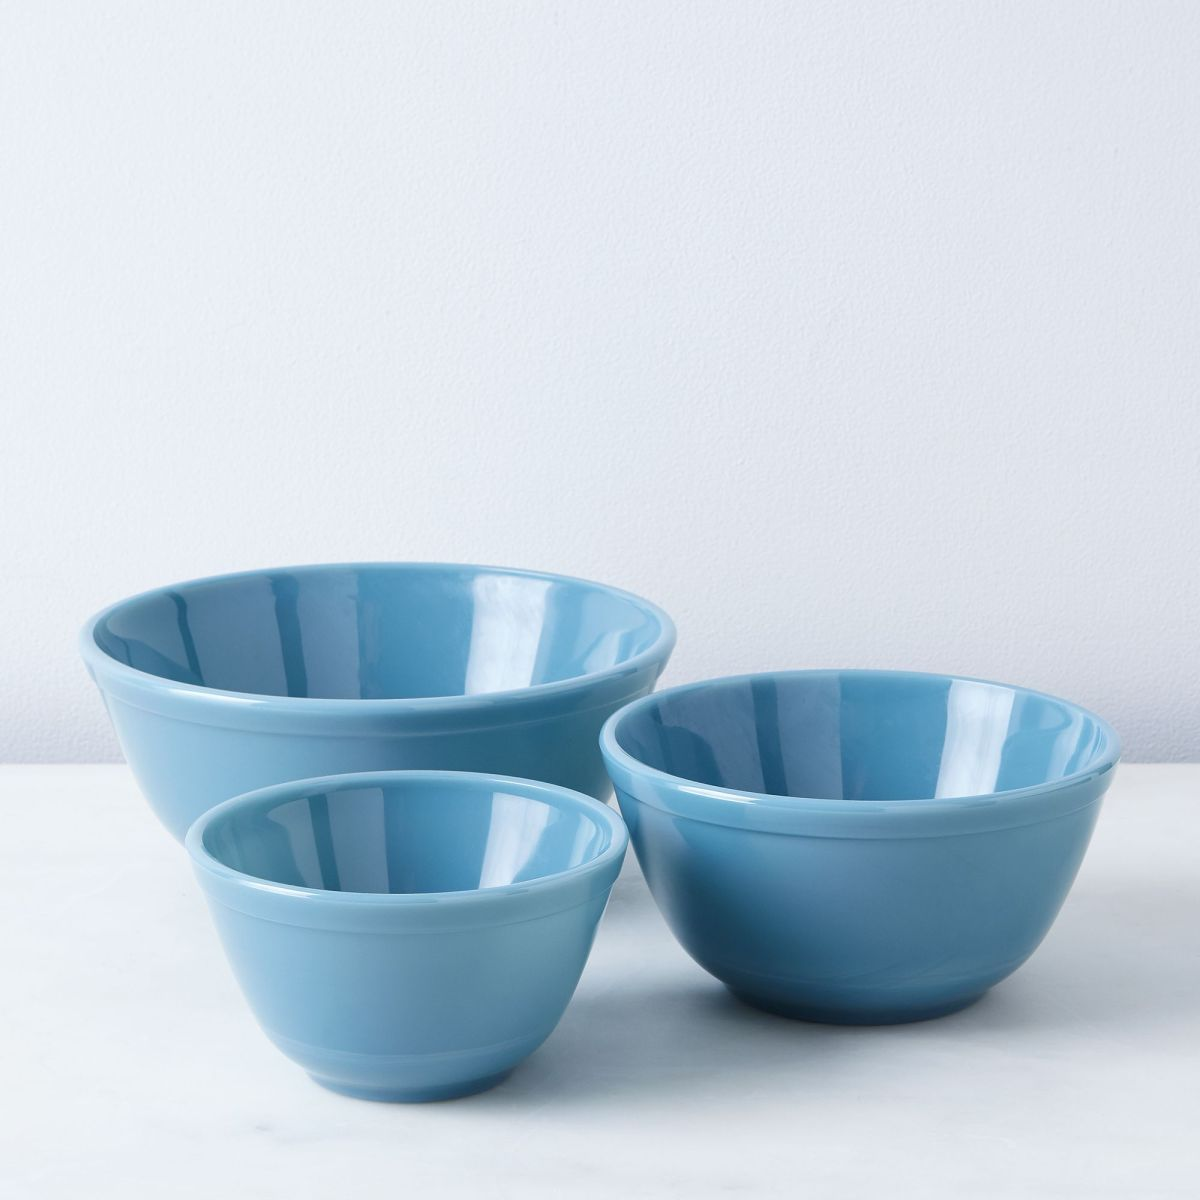 Food52 x Mosser Chelsea Glass 3-Piece Mixing Bowl Set